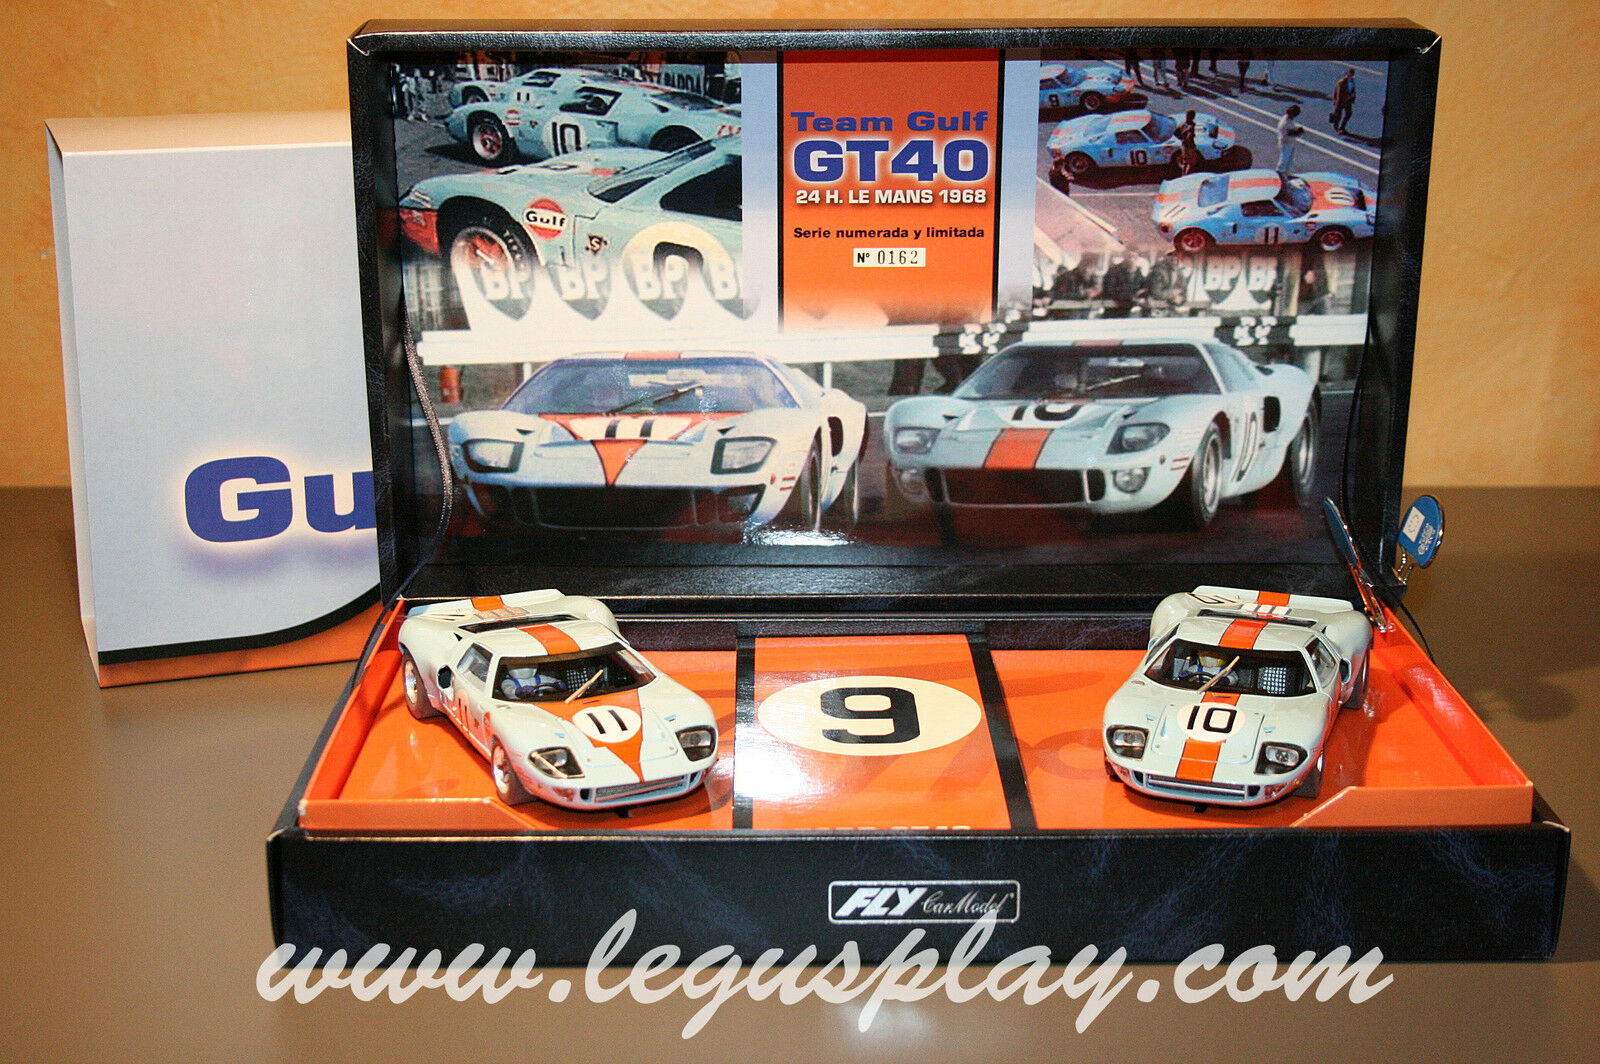 Slot car SCX Scalextric Fly 96016 Team Gulf Ford GT40 team 05 24h. Le Mans 1968